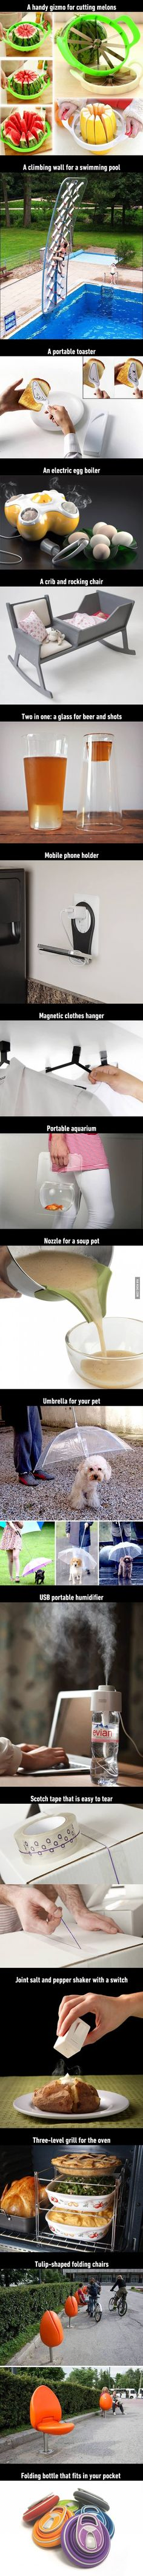 17 new and incredibly brilliant inventions that we should definitely manufacture! - 9GAG